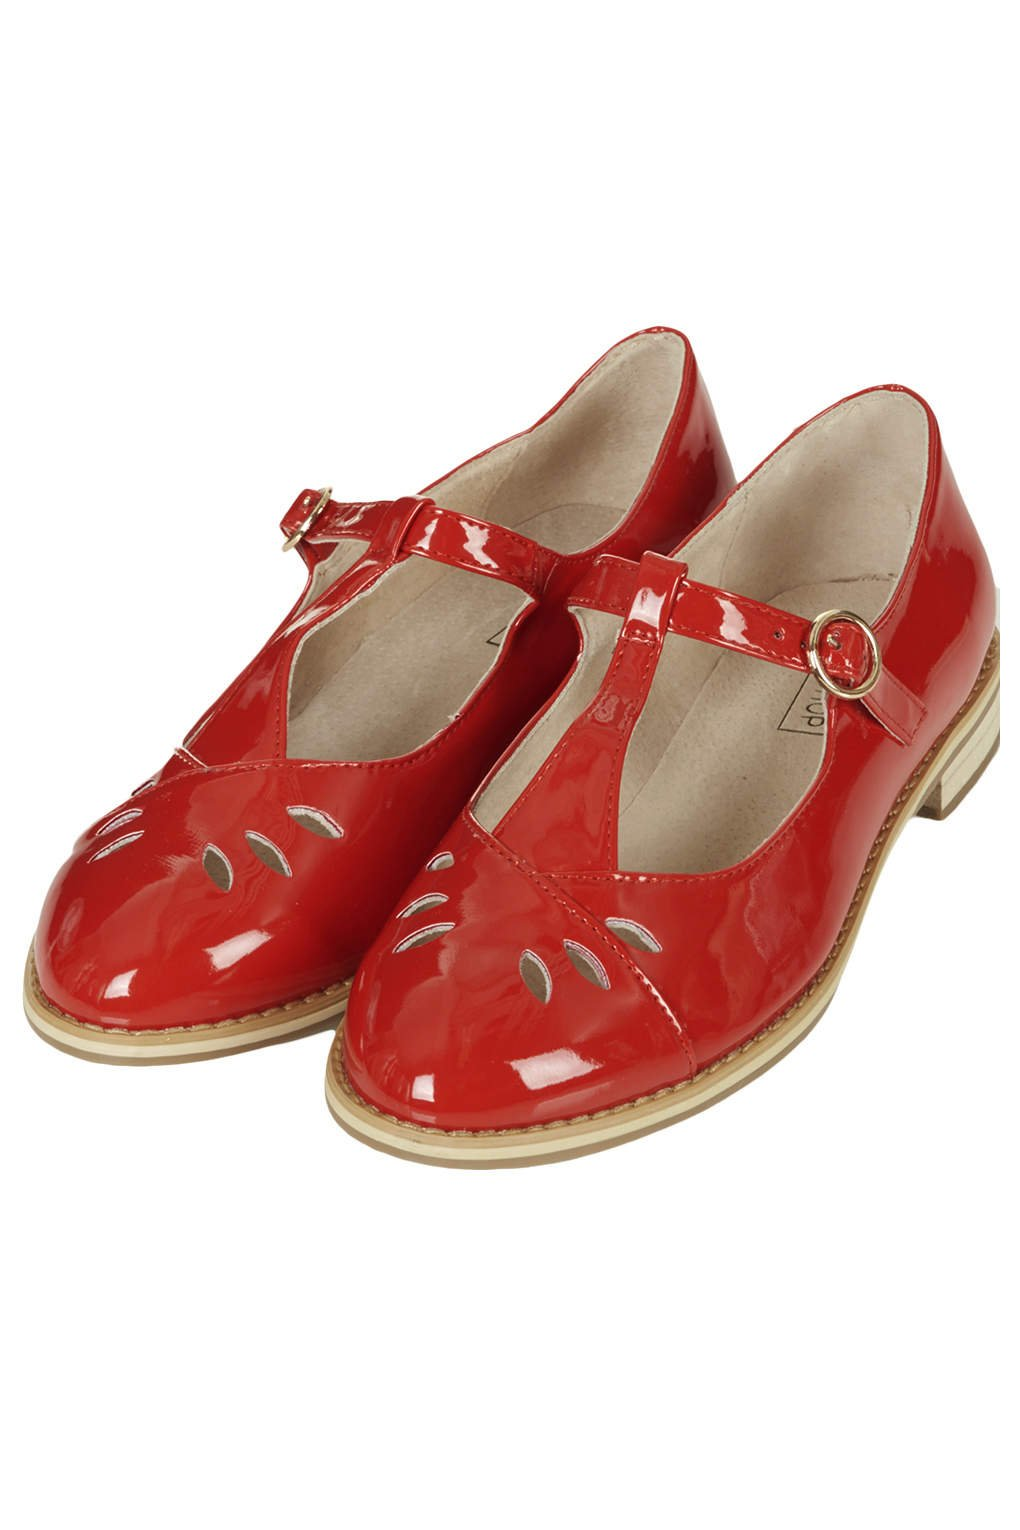 TOPSHOP Gwenny Tbar Geek Shoes in Red